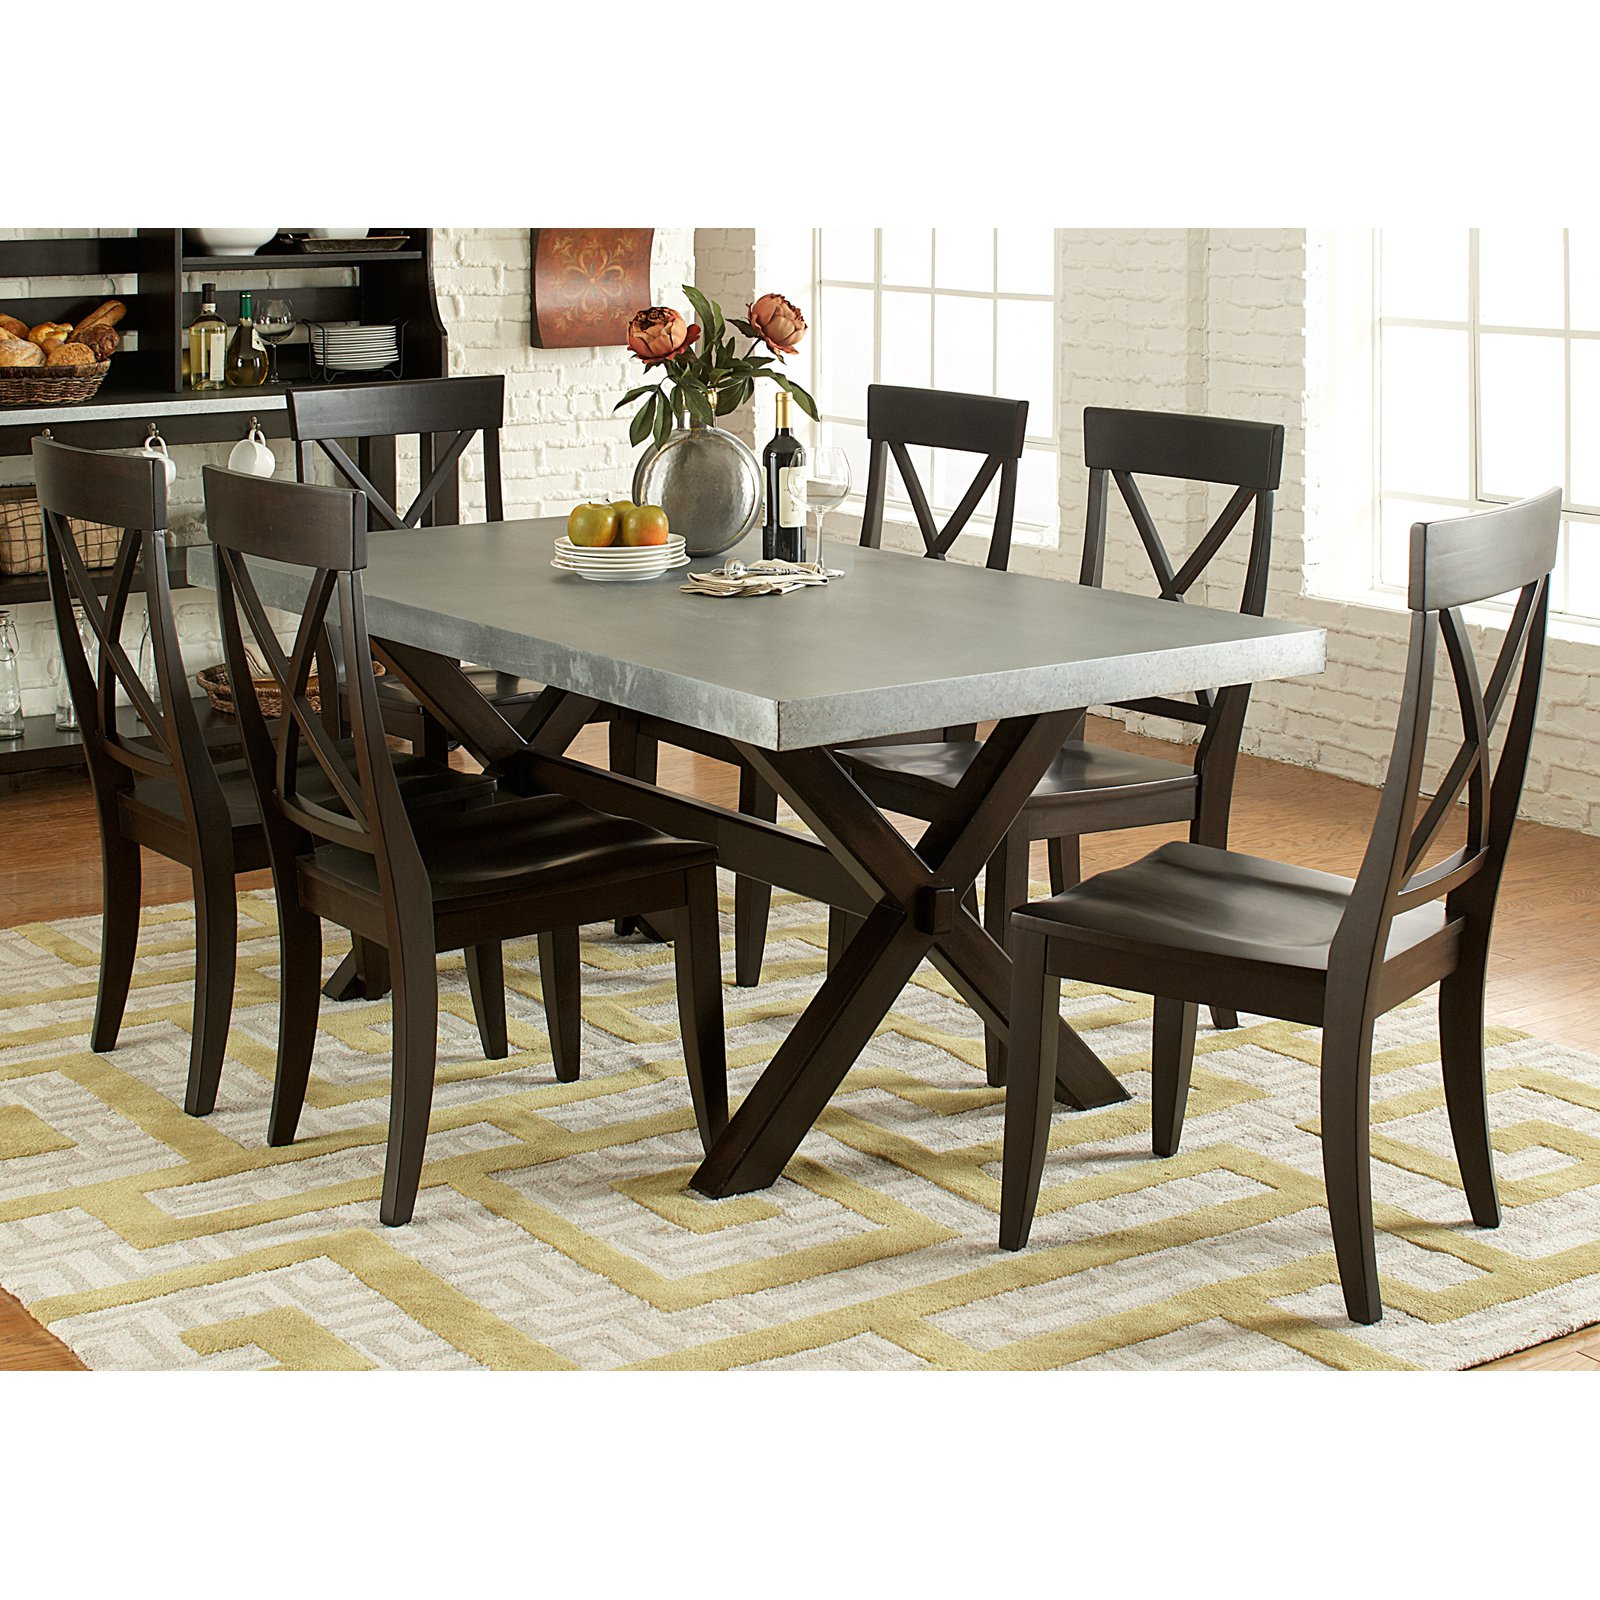 Liberty Furniture Dayton Trestle Dining Table